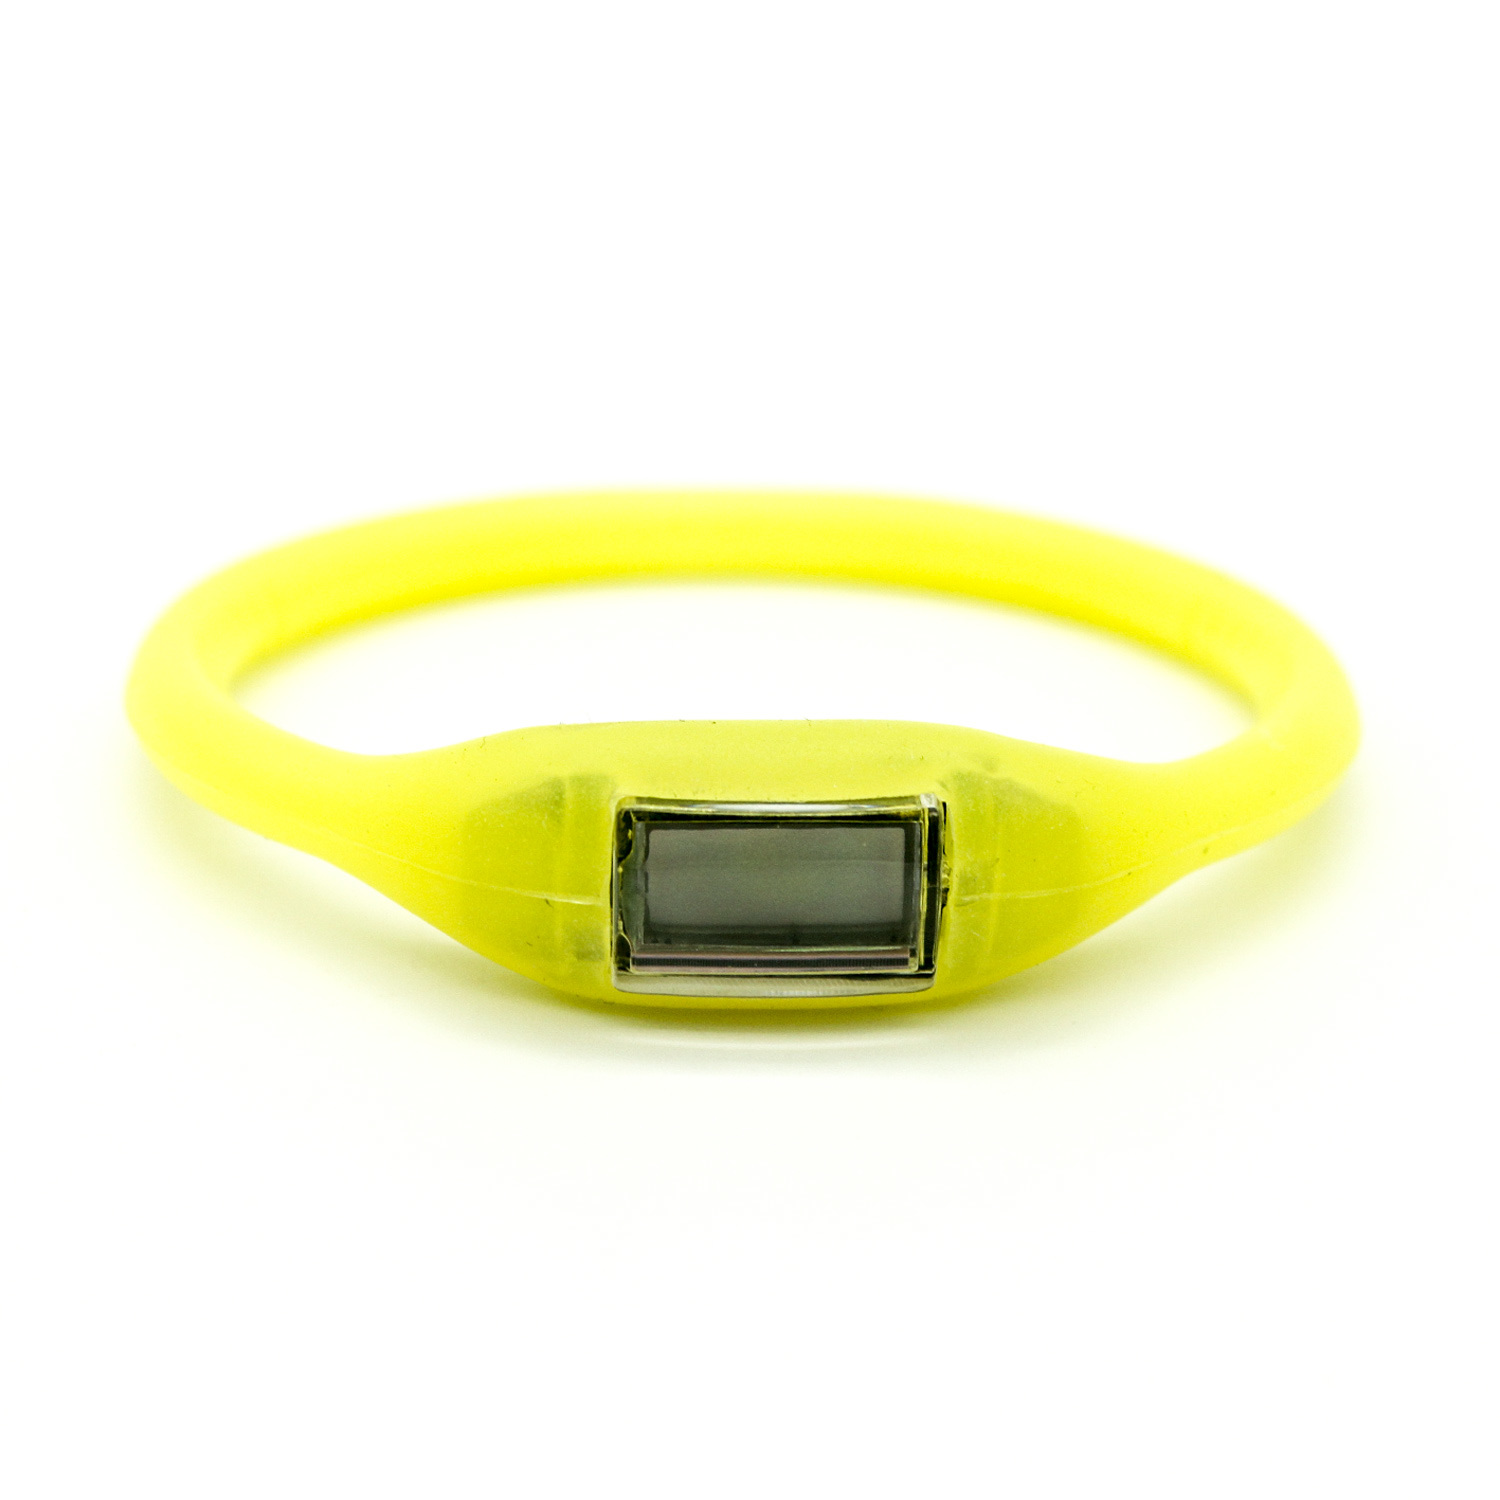 as china lsojrlyeanva hand wristband promotional bracelet product rfid nfc key rubber smart silicone fob